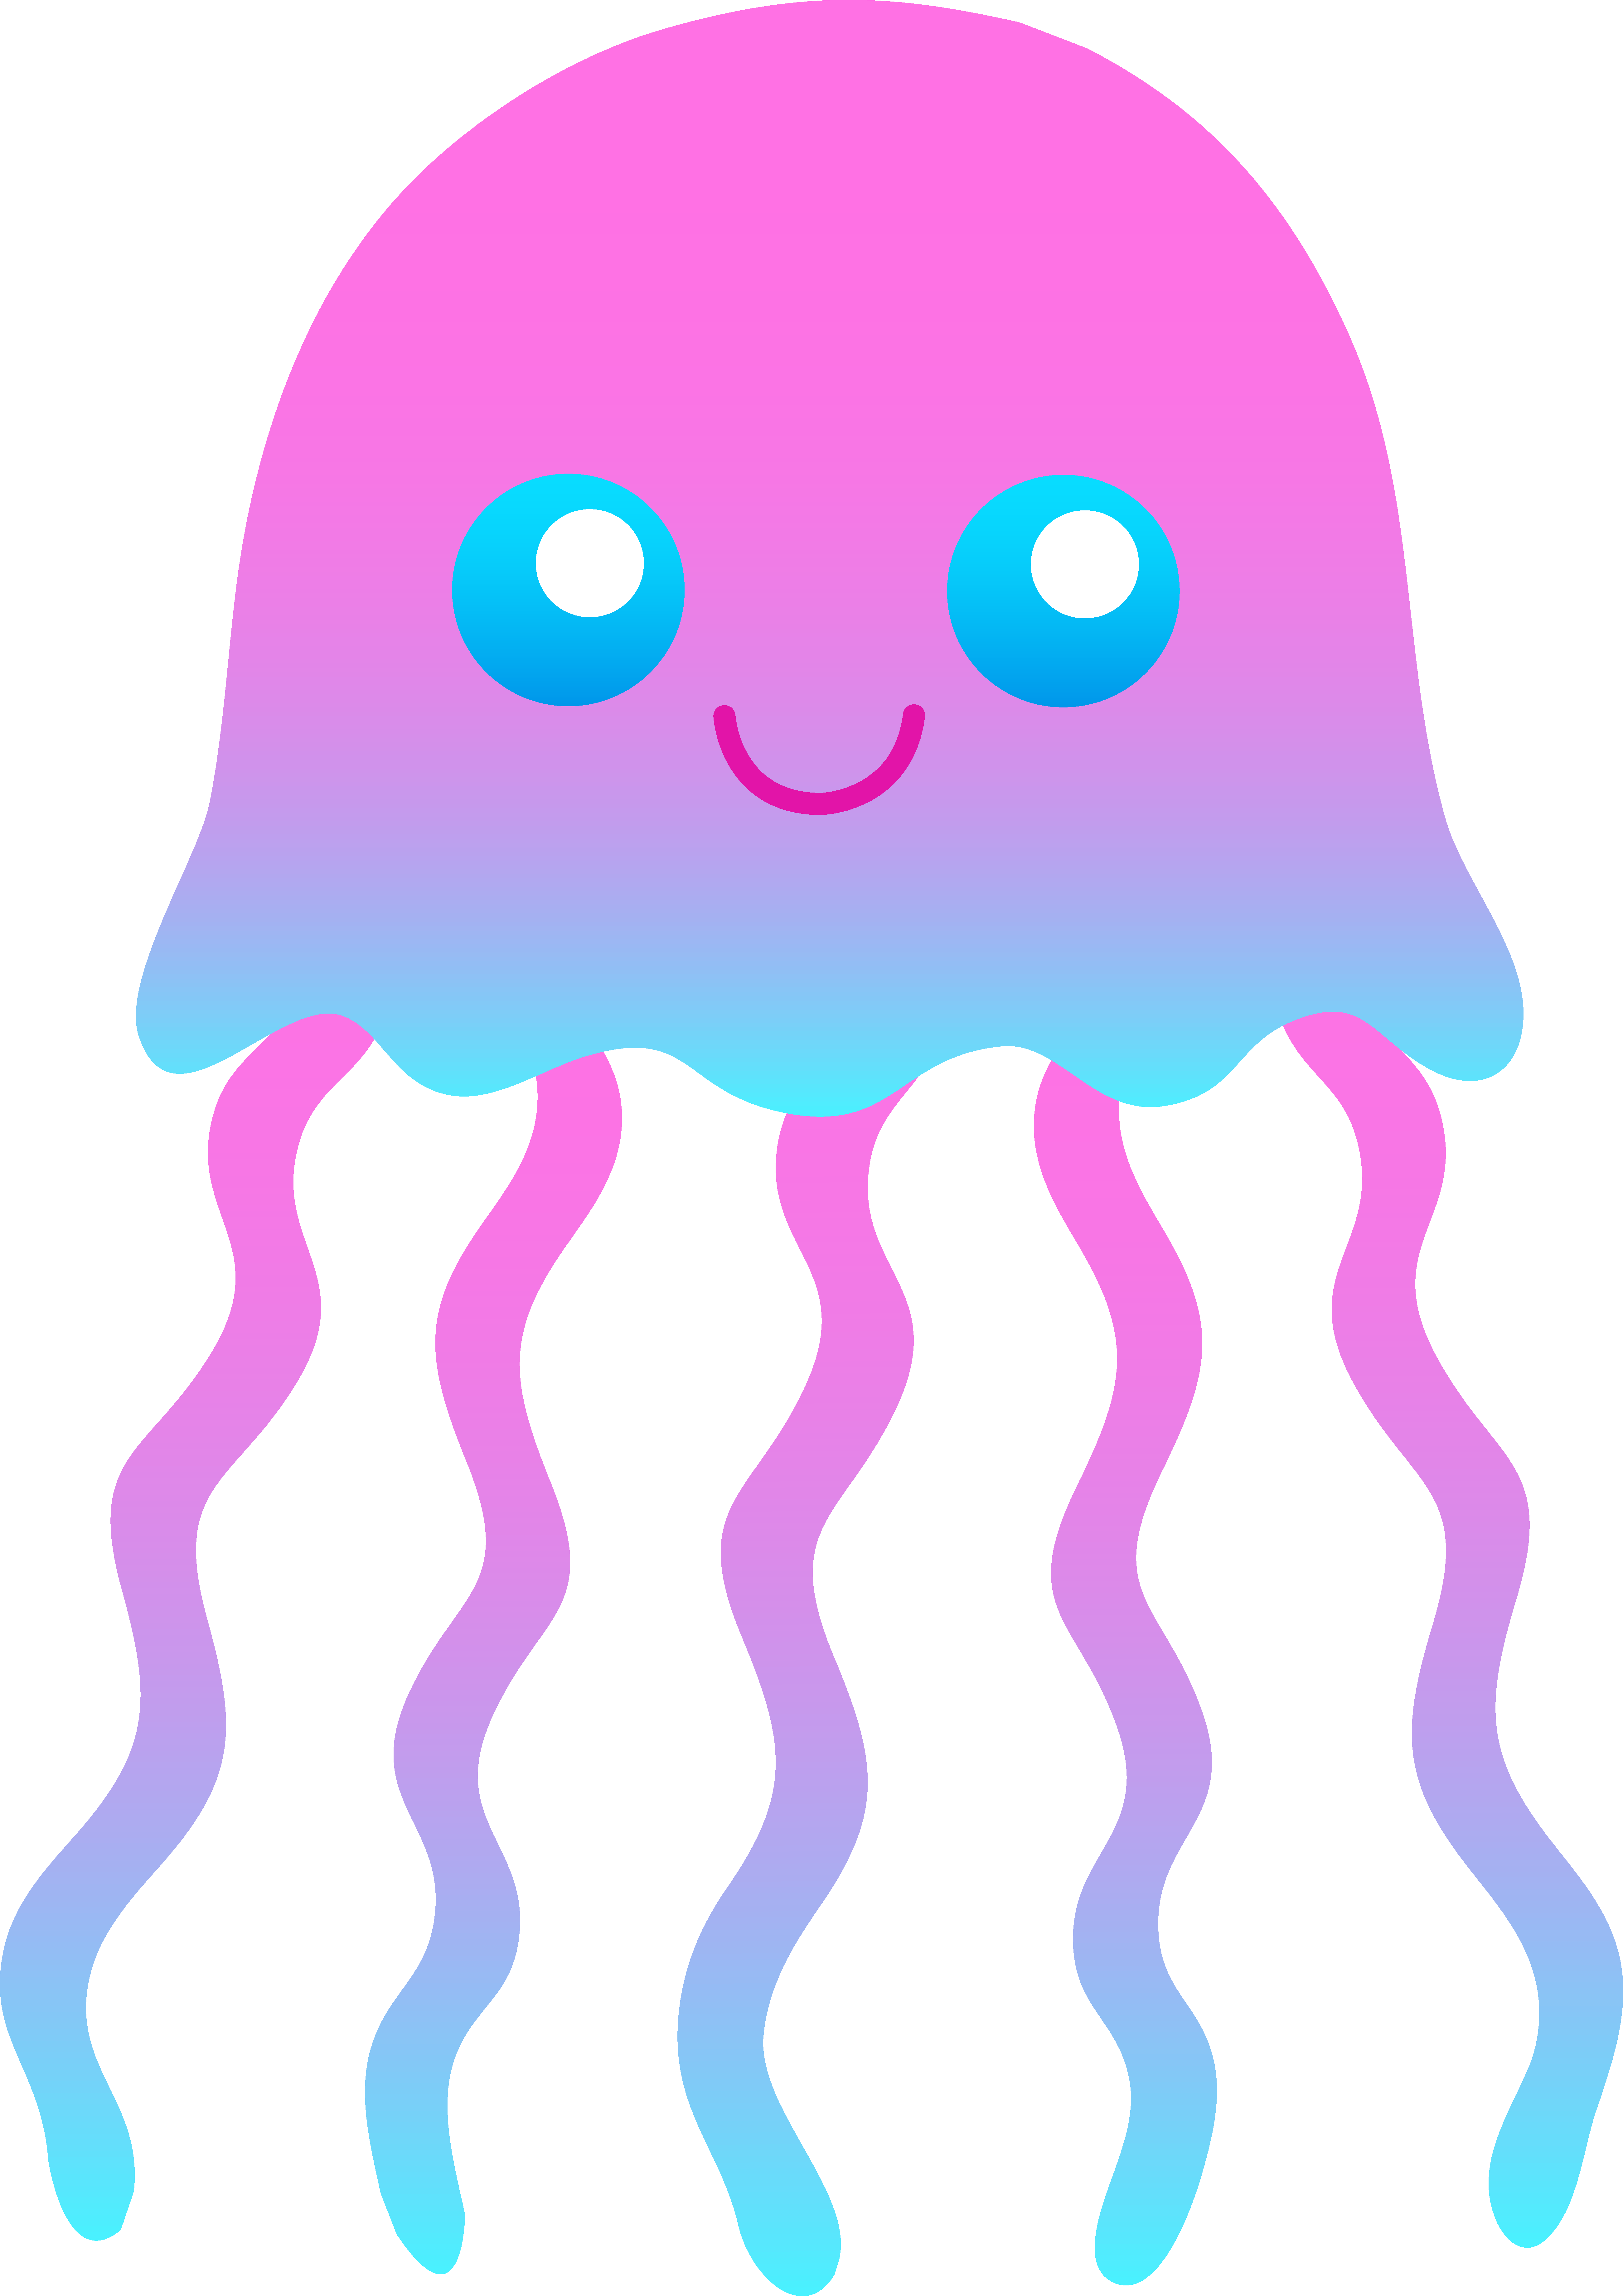 cute jellyfish clipart clipart panda free clipart images rh clipartpanda com jellyfish clipart animation jellyfish images clip art